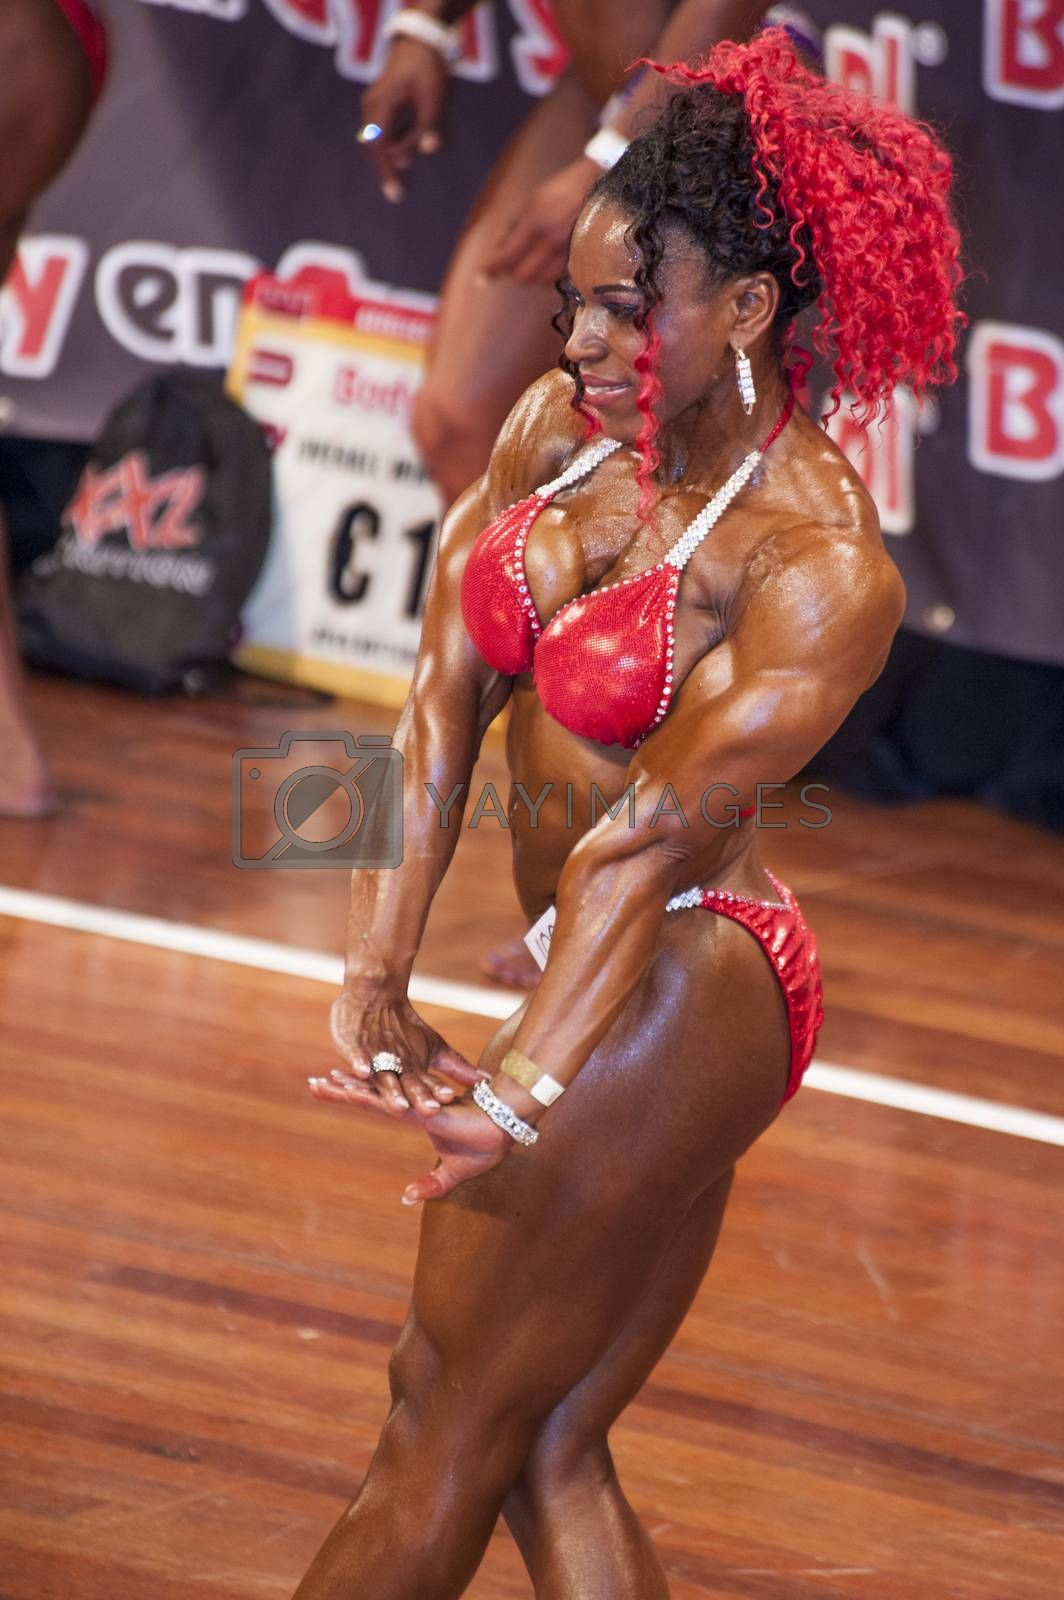 Female bodybuilder in triceps pose and red bikini by yellowpaul